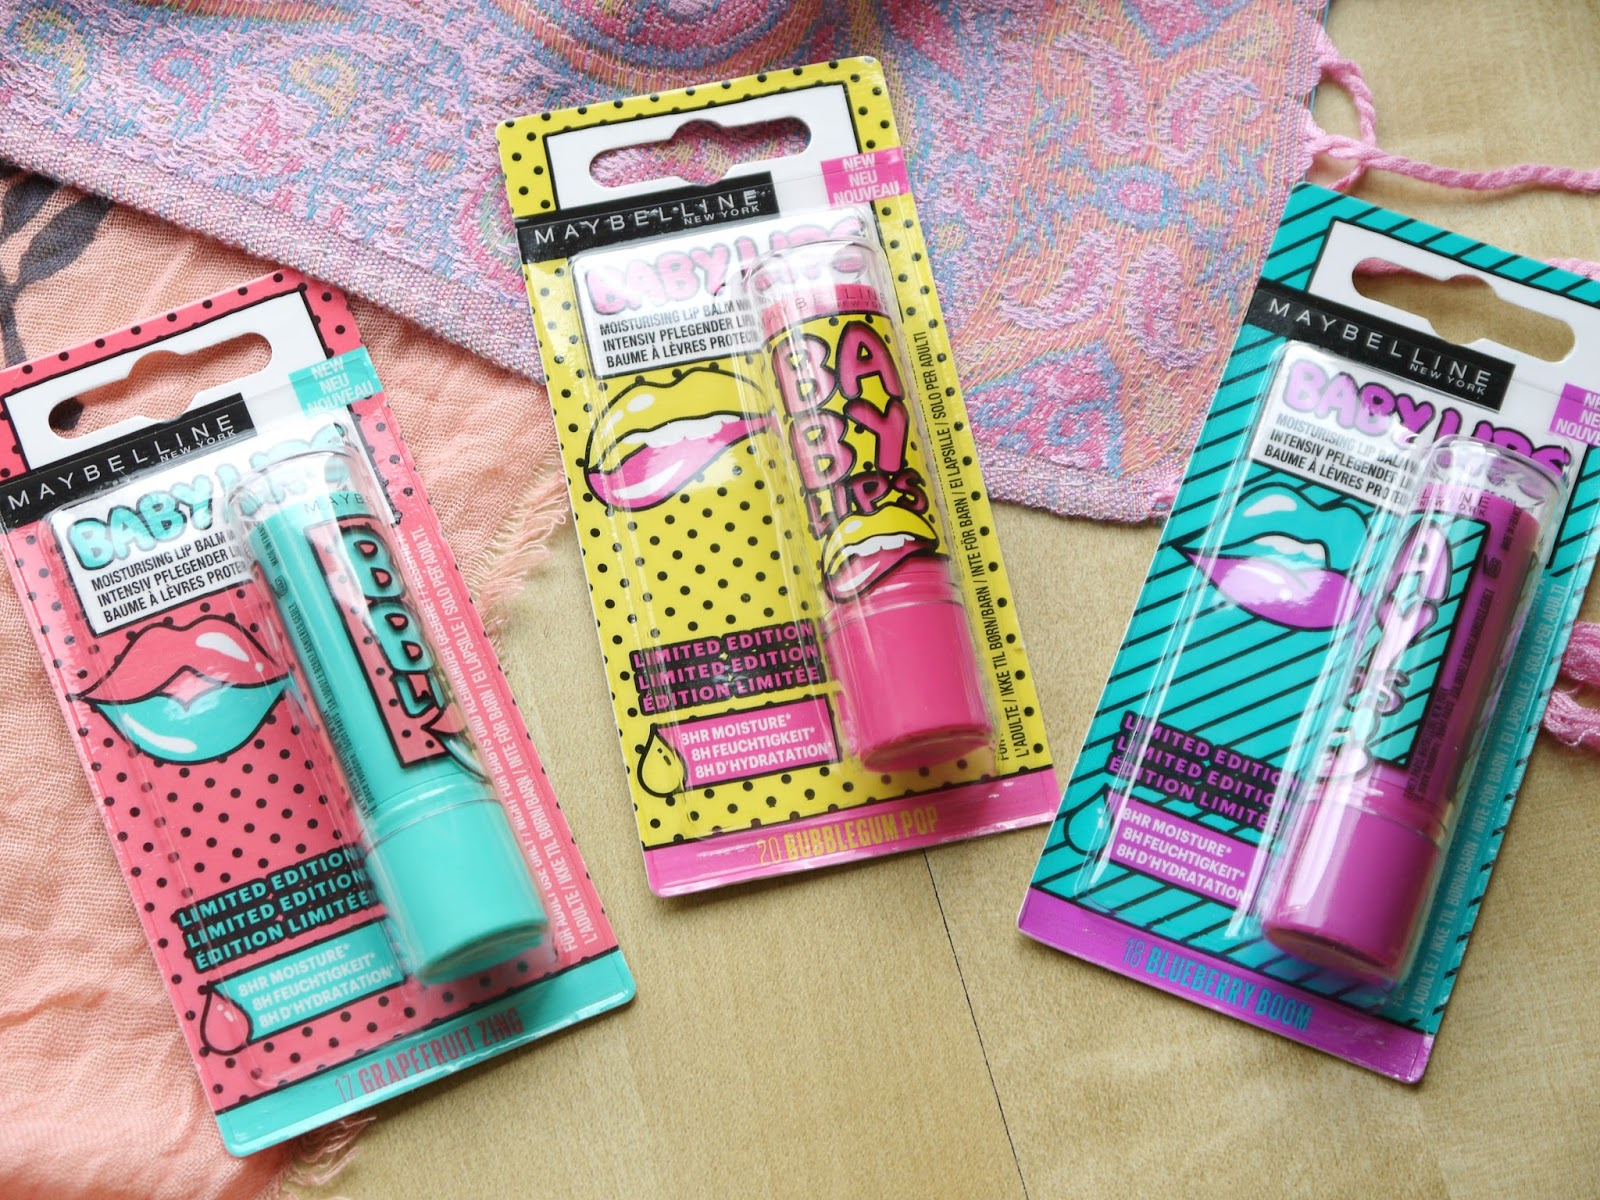 New* maybelline baby lips color alia ❤ new york limited edition.